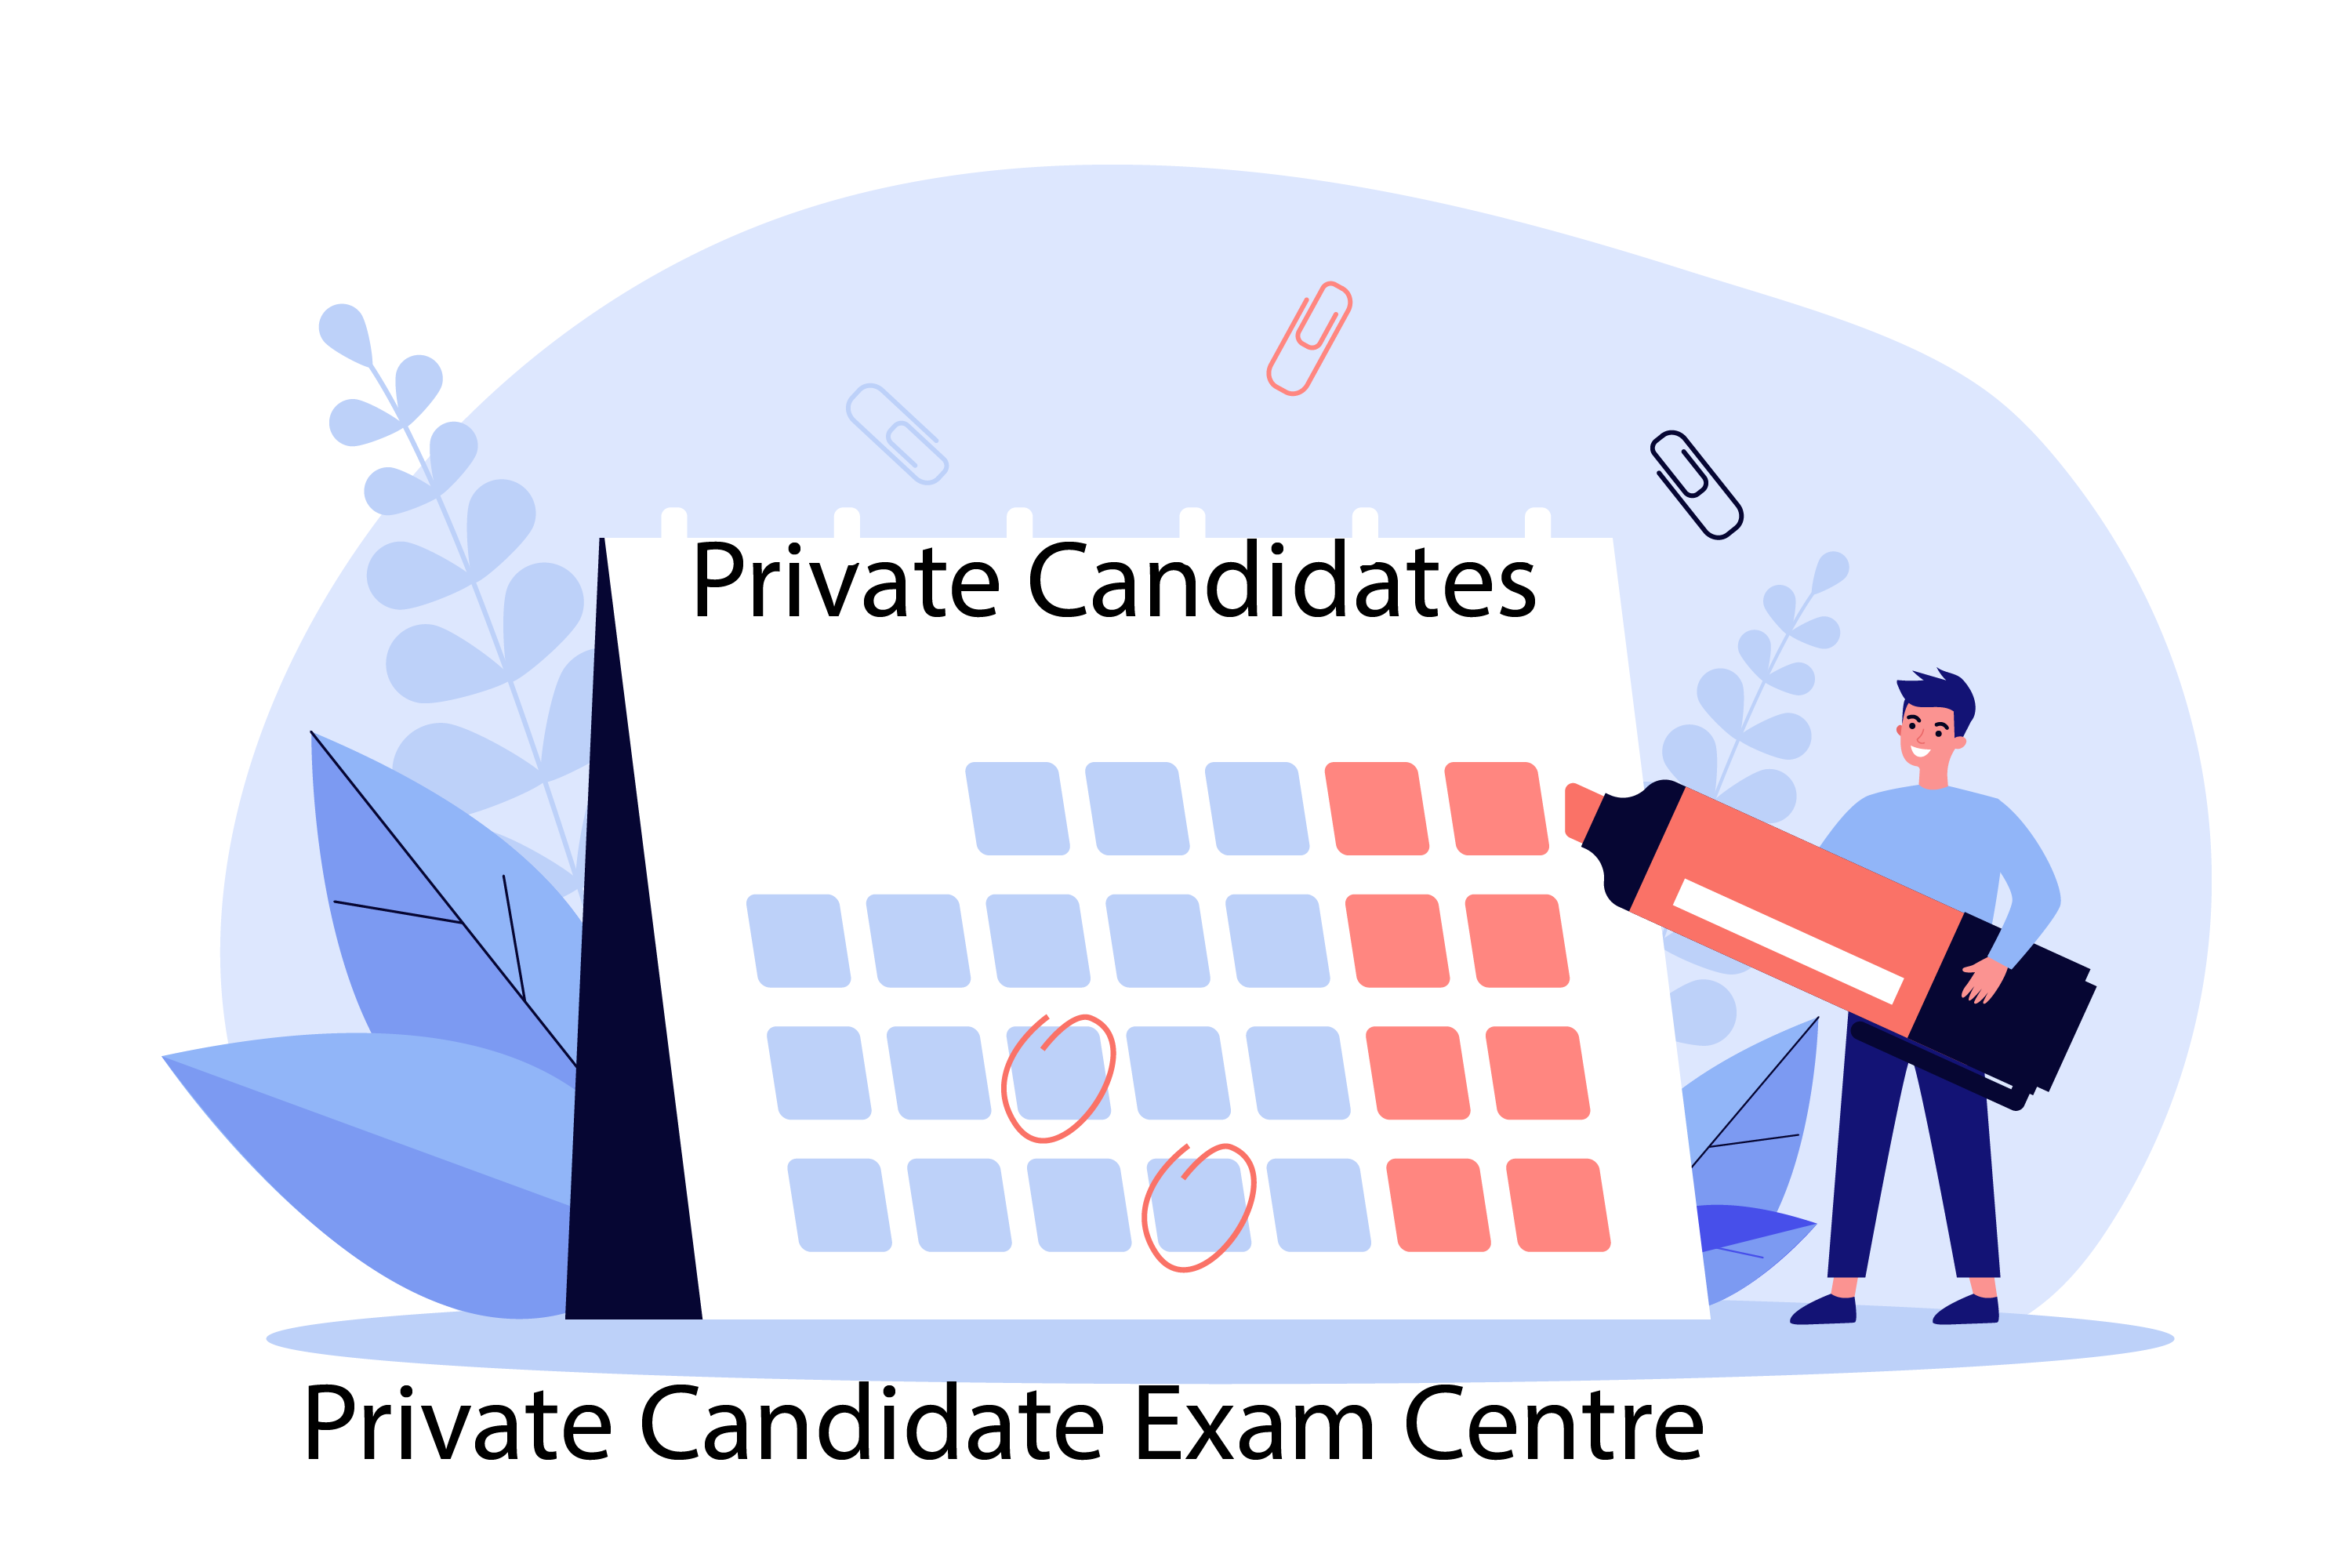 Private candidate exams calender